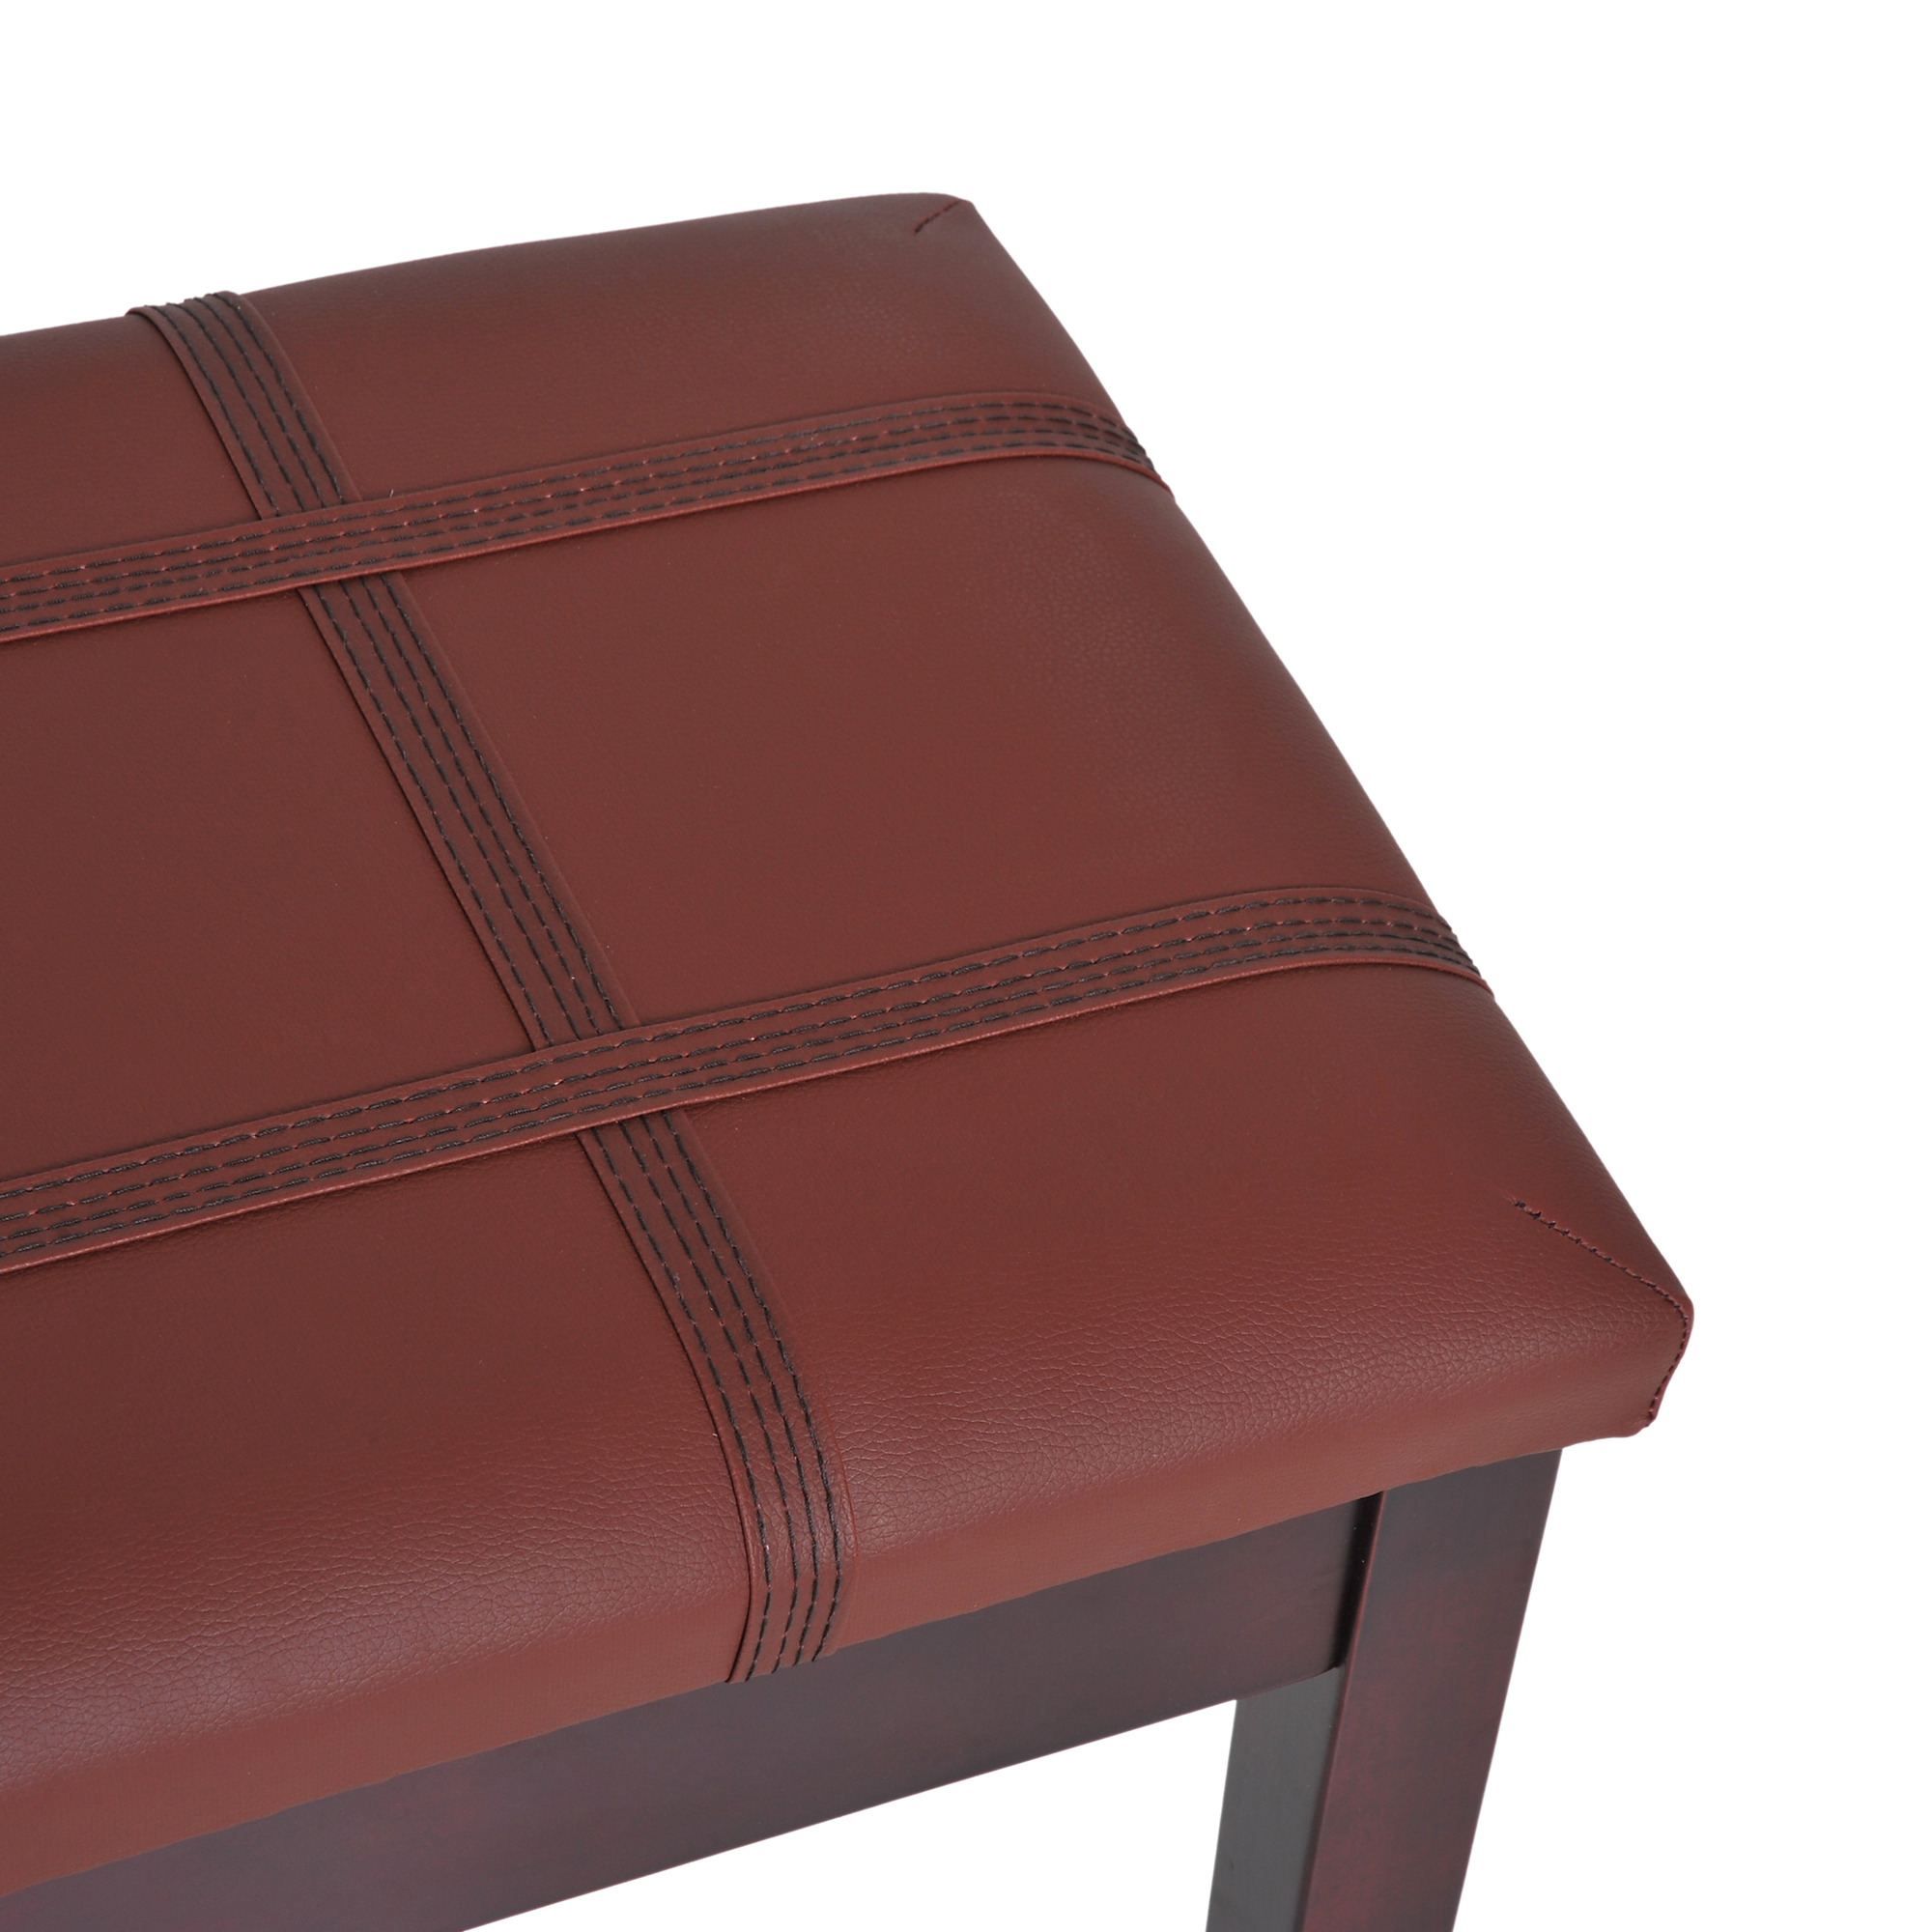 Two-Person-Lift-Top-Piano-Storage-Bench-Faux-Leather-Keyboard-Stool-Birchwood thumbnail 18